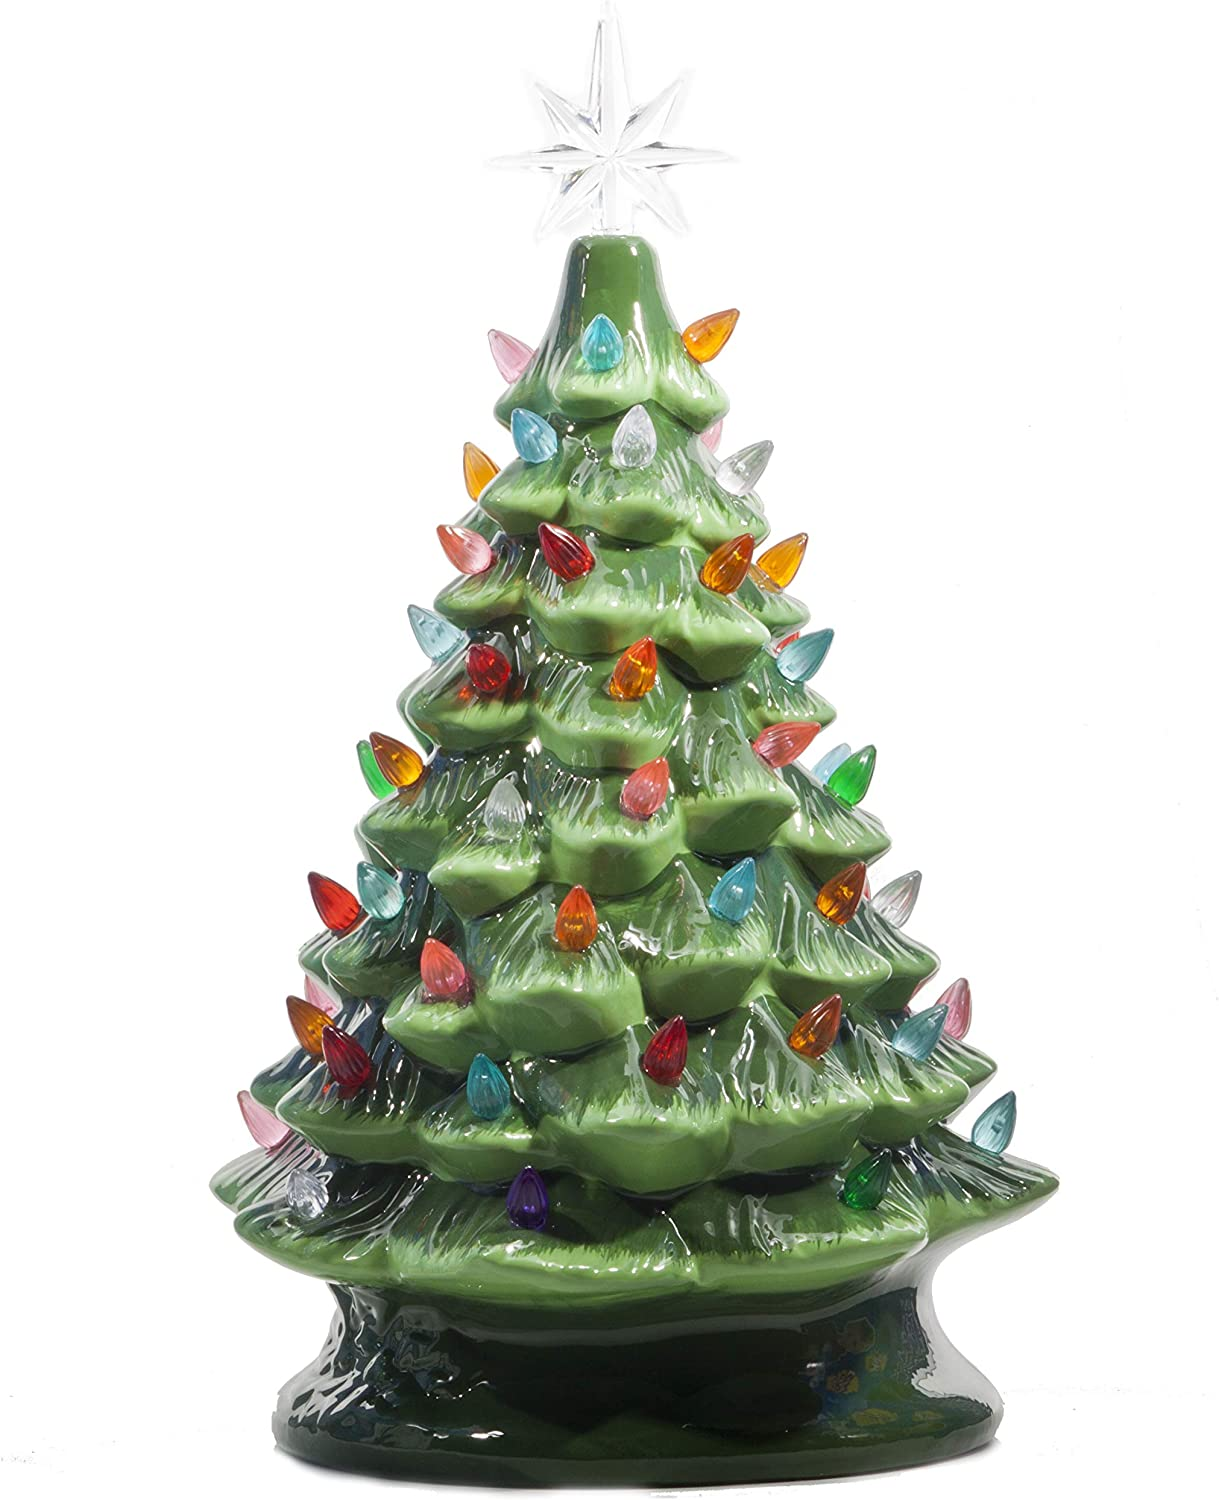 Amazon Com Relive Christmas Is Forever Lighted Tabletop Ceramic Tree 16 Inch Green Tree With Multicolored Lights Home Kitchen